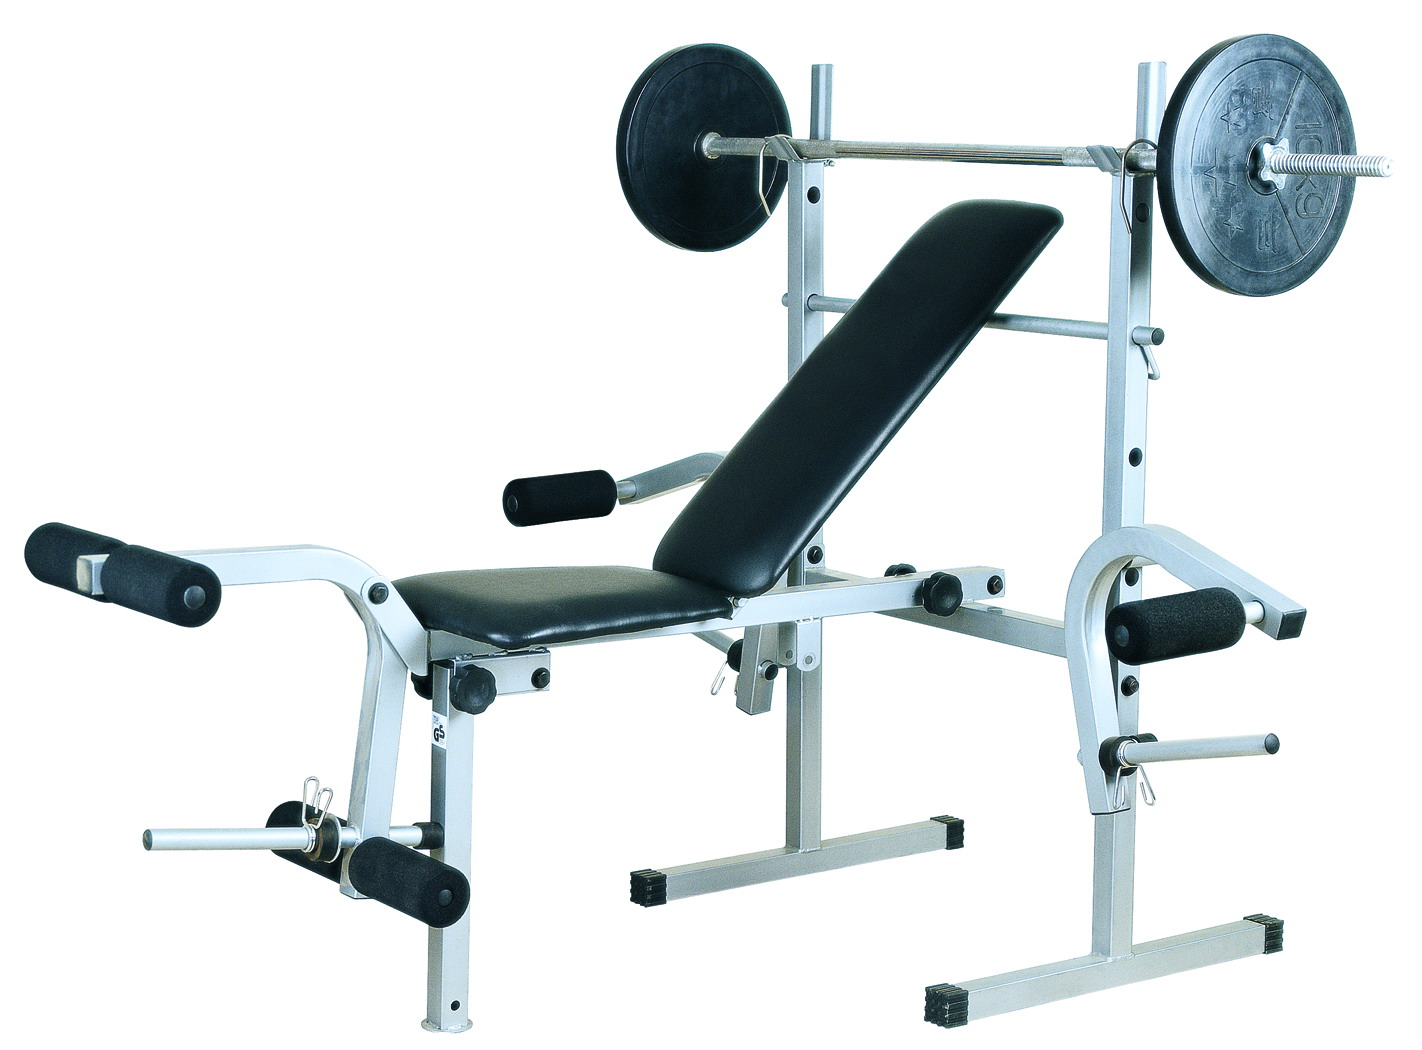 Singapore home gym 03 29 11 Bench weights